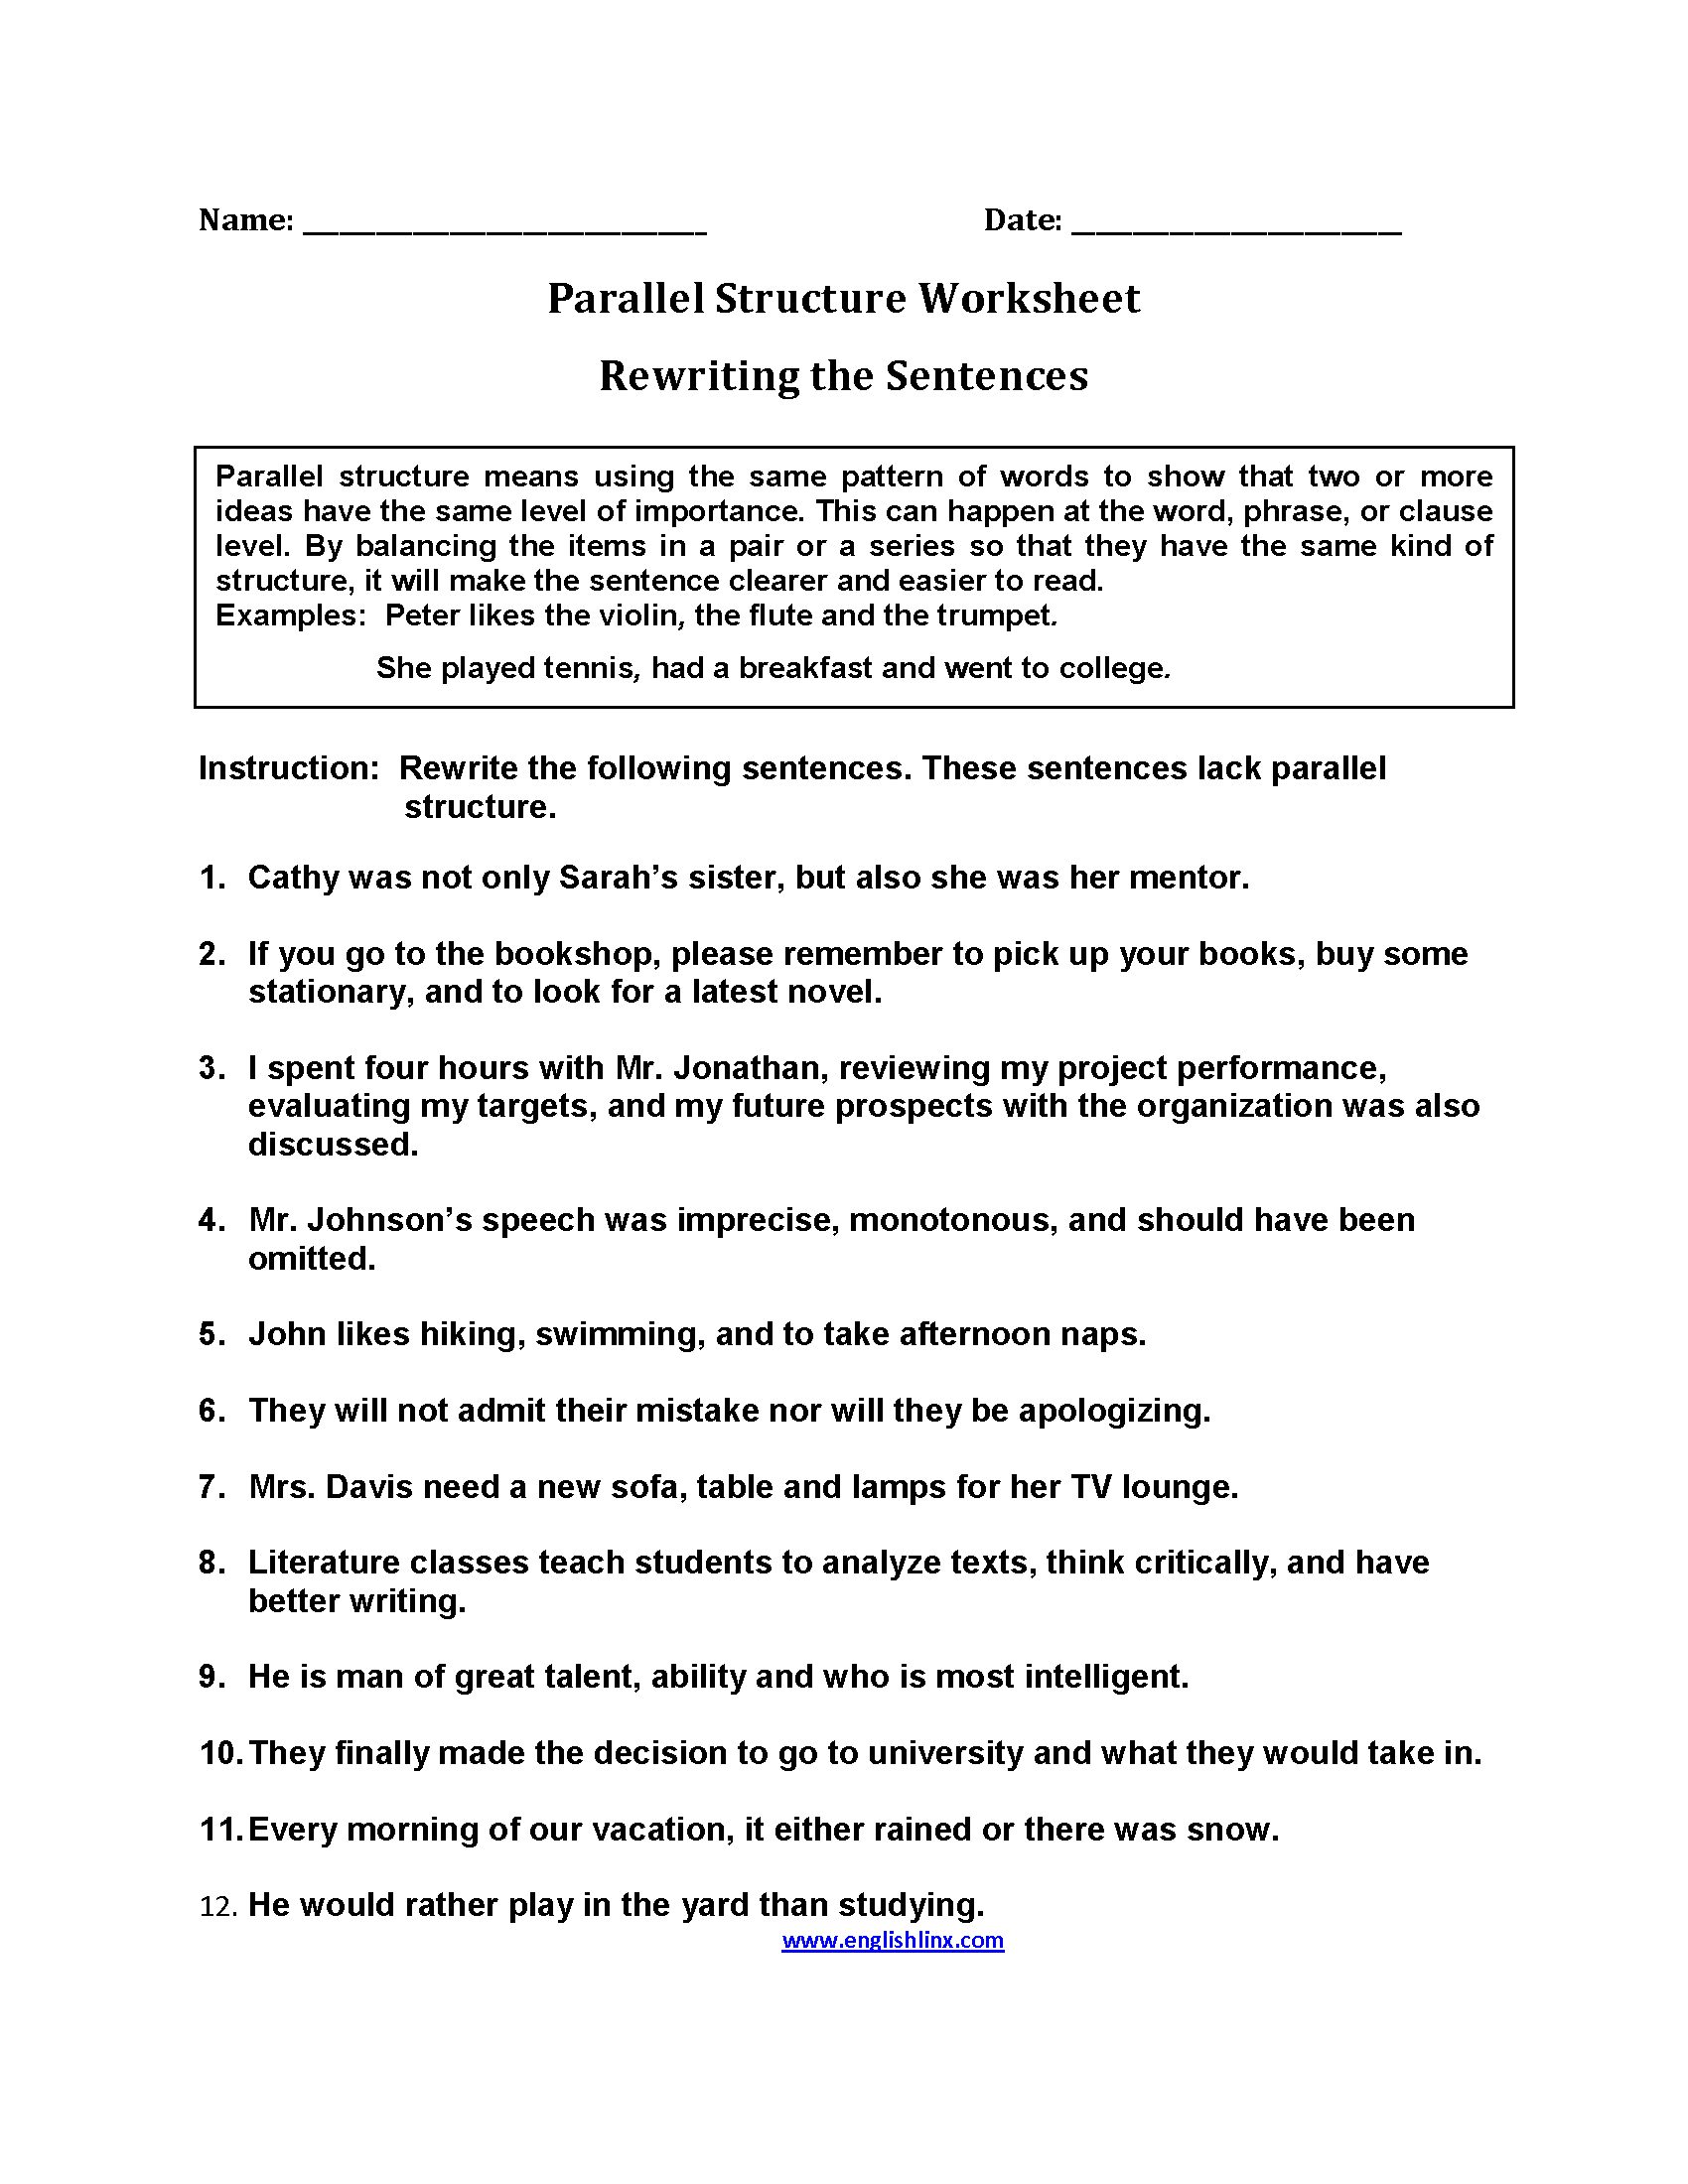 Review Sentences for Errors Parallel Worksheets | English language ...